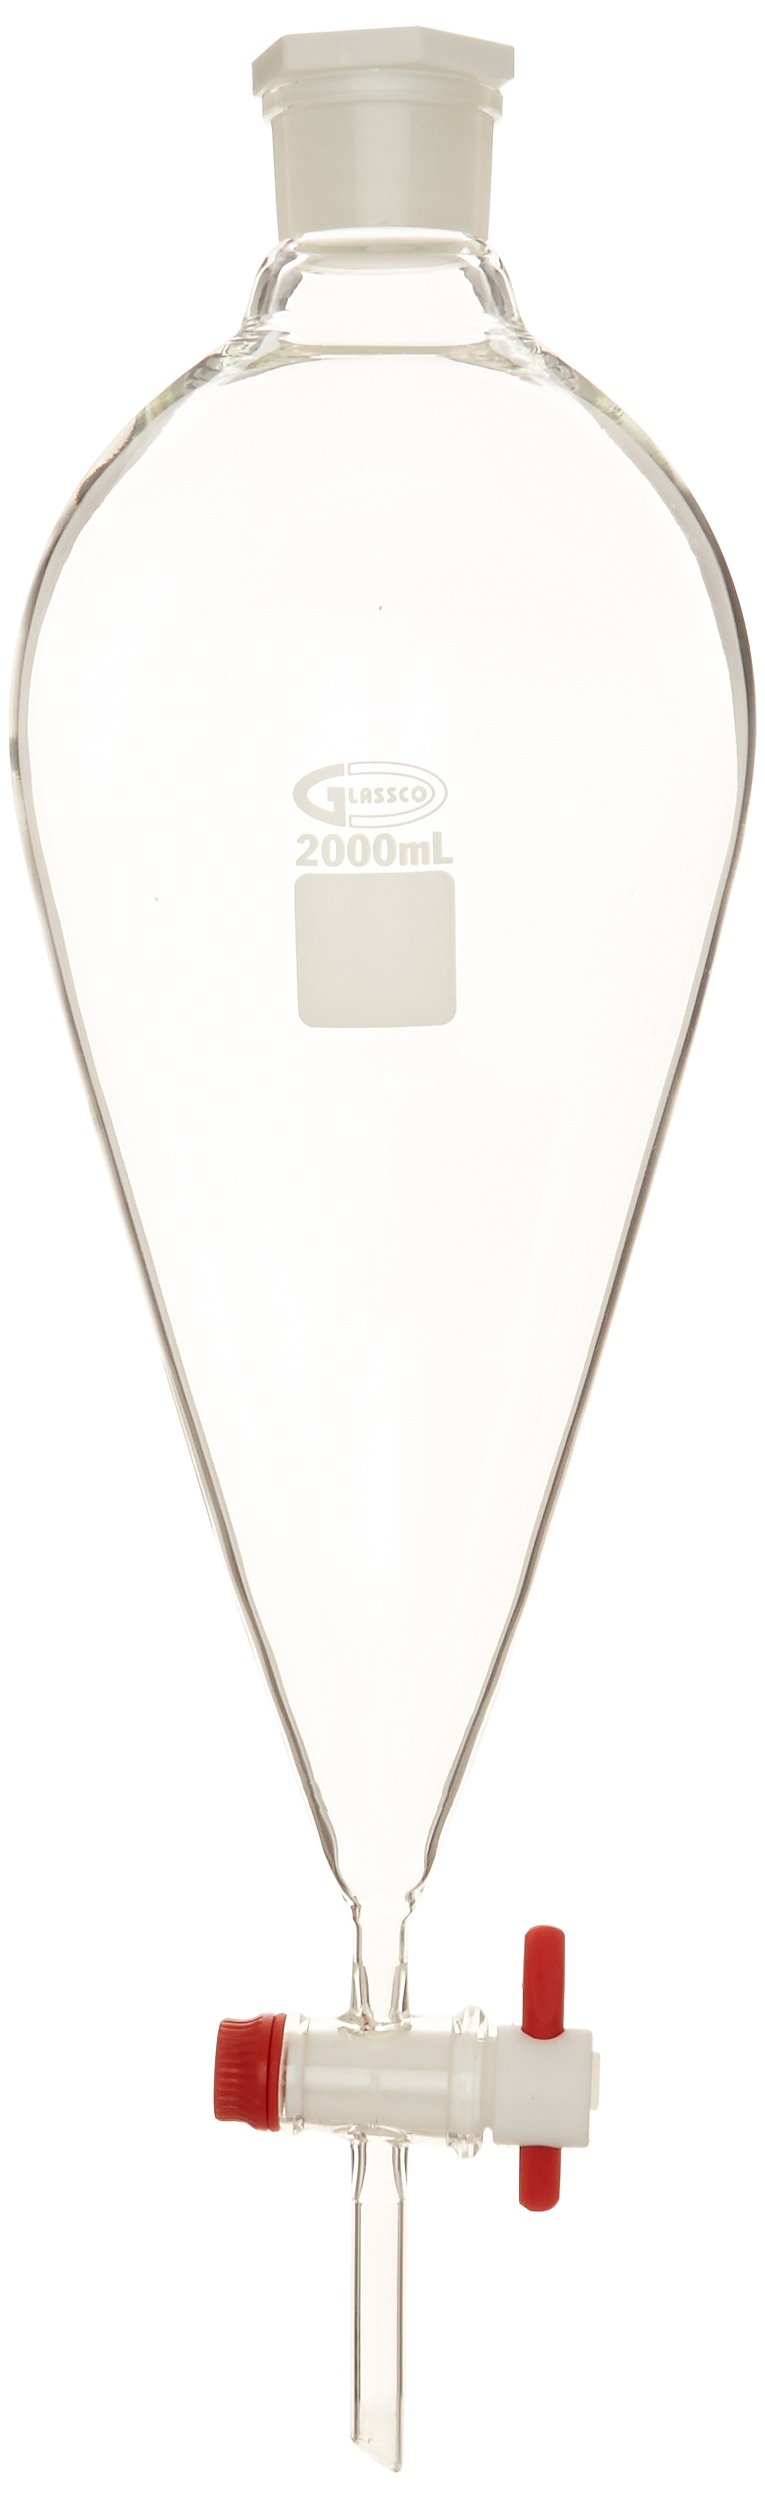 United Scientific SF149-2000 Glass Conical Seperatory Funnel with PTFE Stopcock and Plastic Stopper, 2000ml Capacity